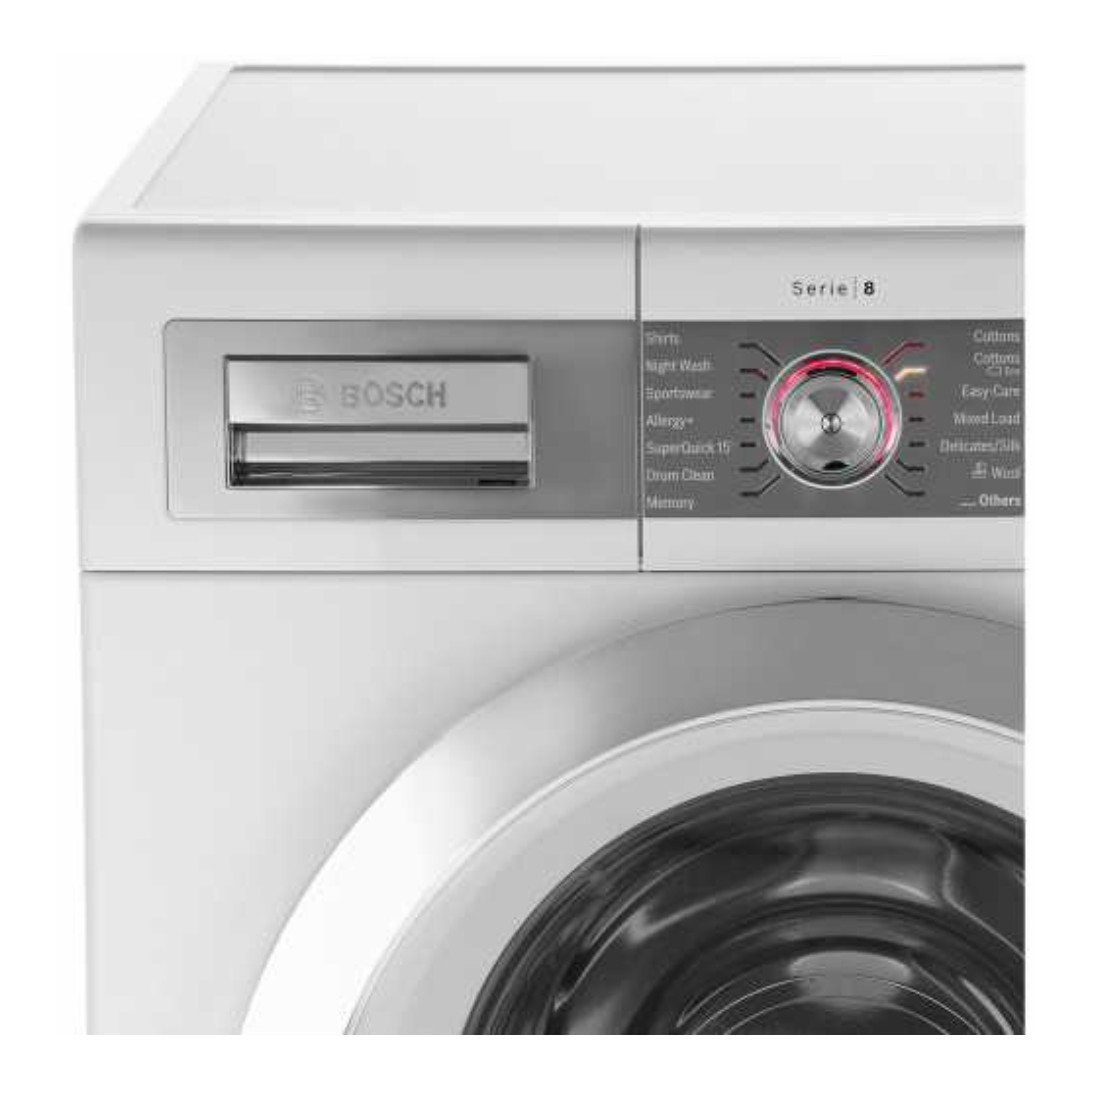 WAYH8790GB | Series 8 Automatic washing machine